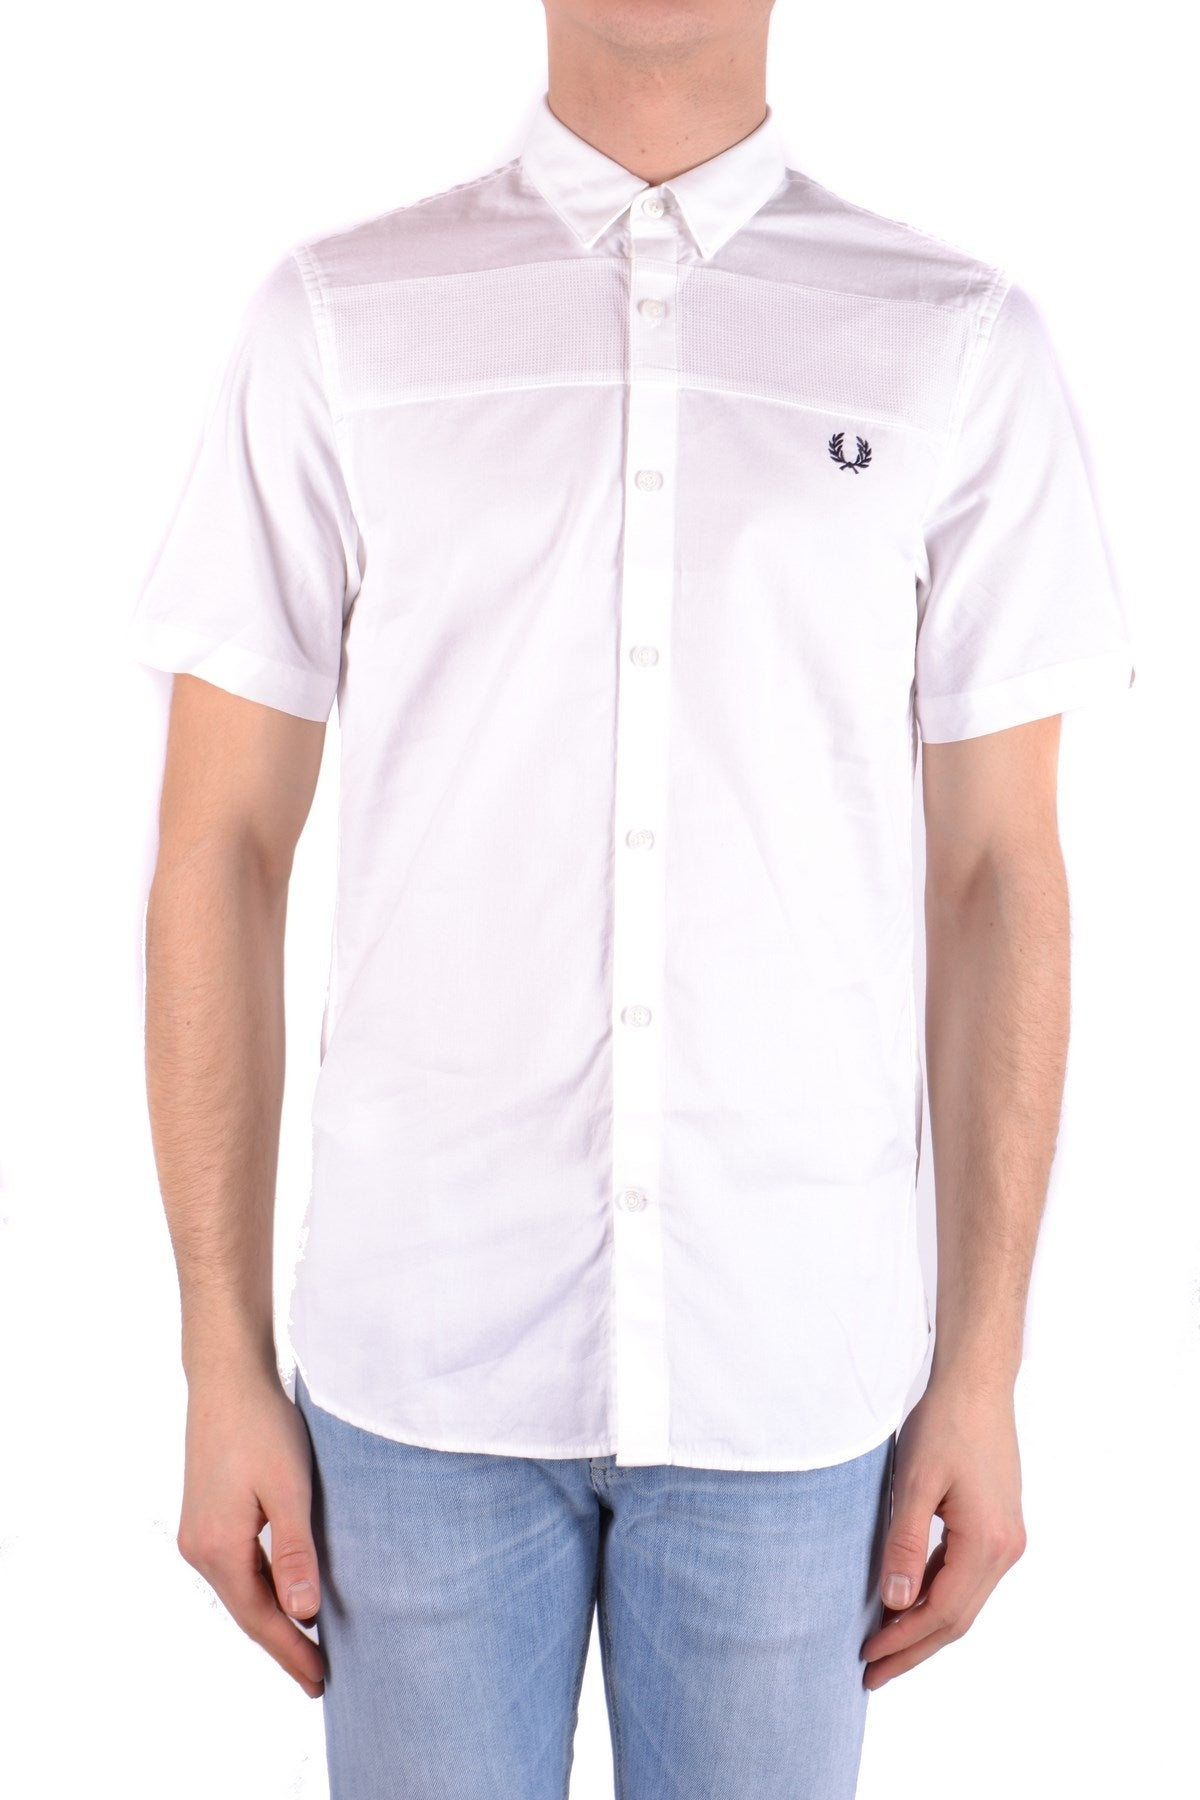 Shirt Fred Perry-Shirts - MAN-S-Product Details Terms: New With LabelYear: 2017Main Color: WhiteSeason: Spring / SummerMade In: ChinaManufacturer Part Number: M1540Size: IntGender: ManClothing Type: CamiciaComposition: Cotton 100%-Keyomi-Sook